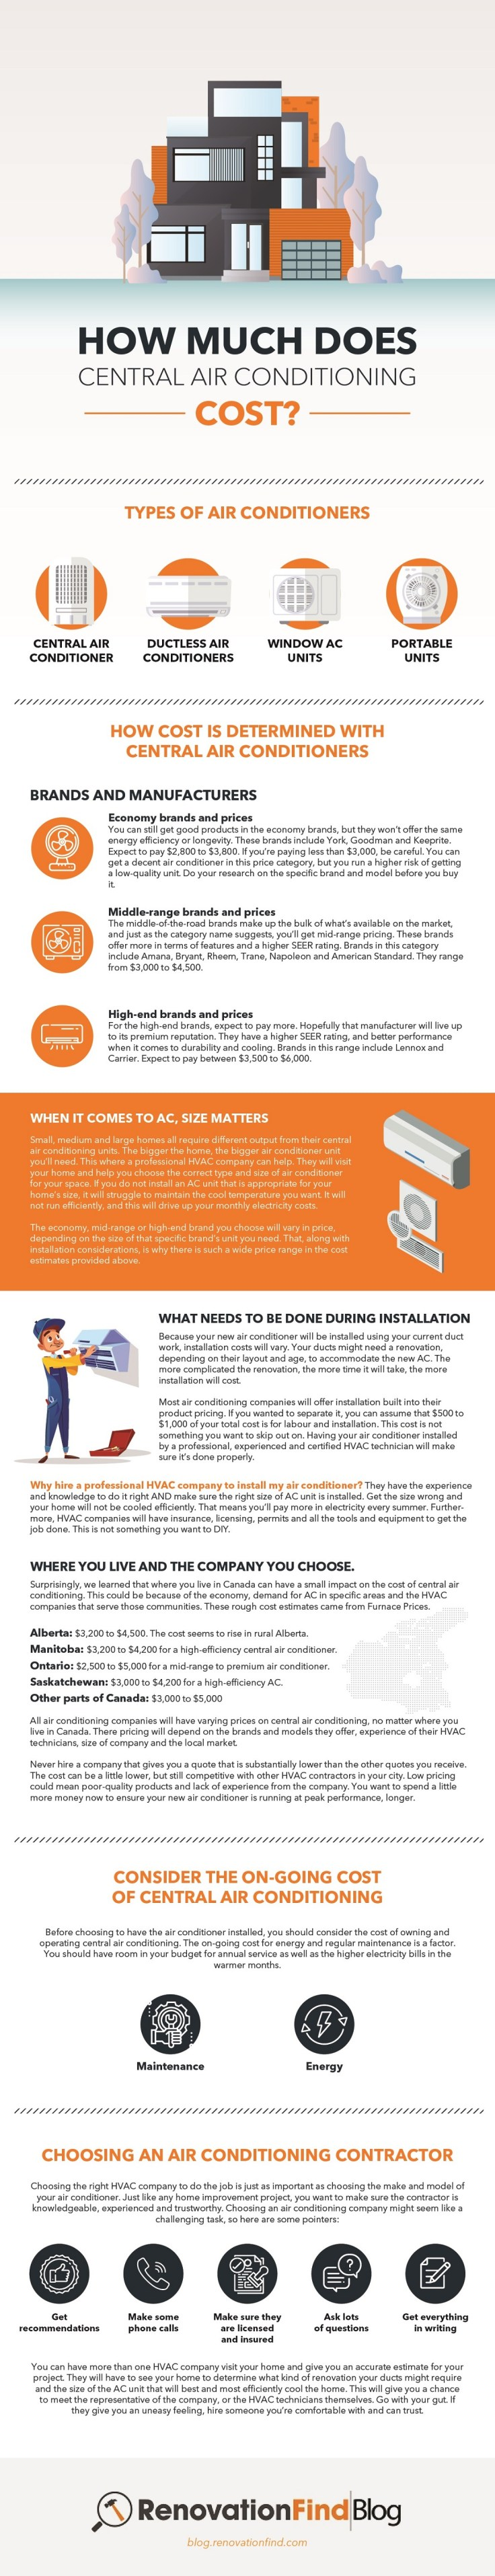 HOW MUCH DOES CENTRAL AIR CONDITIONING COST?